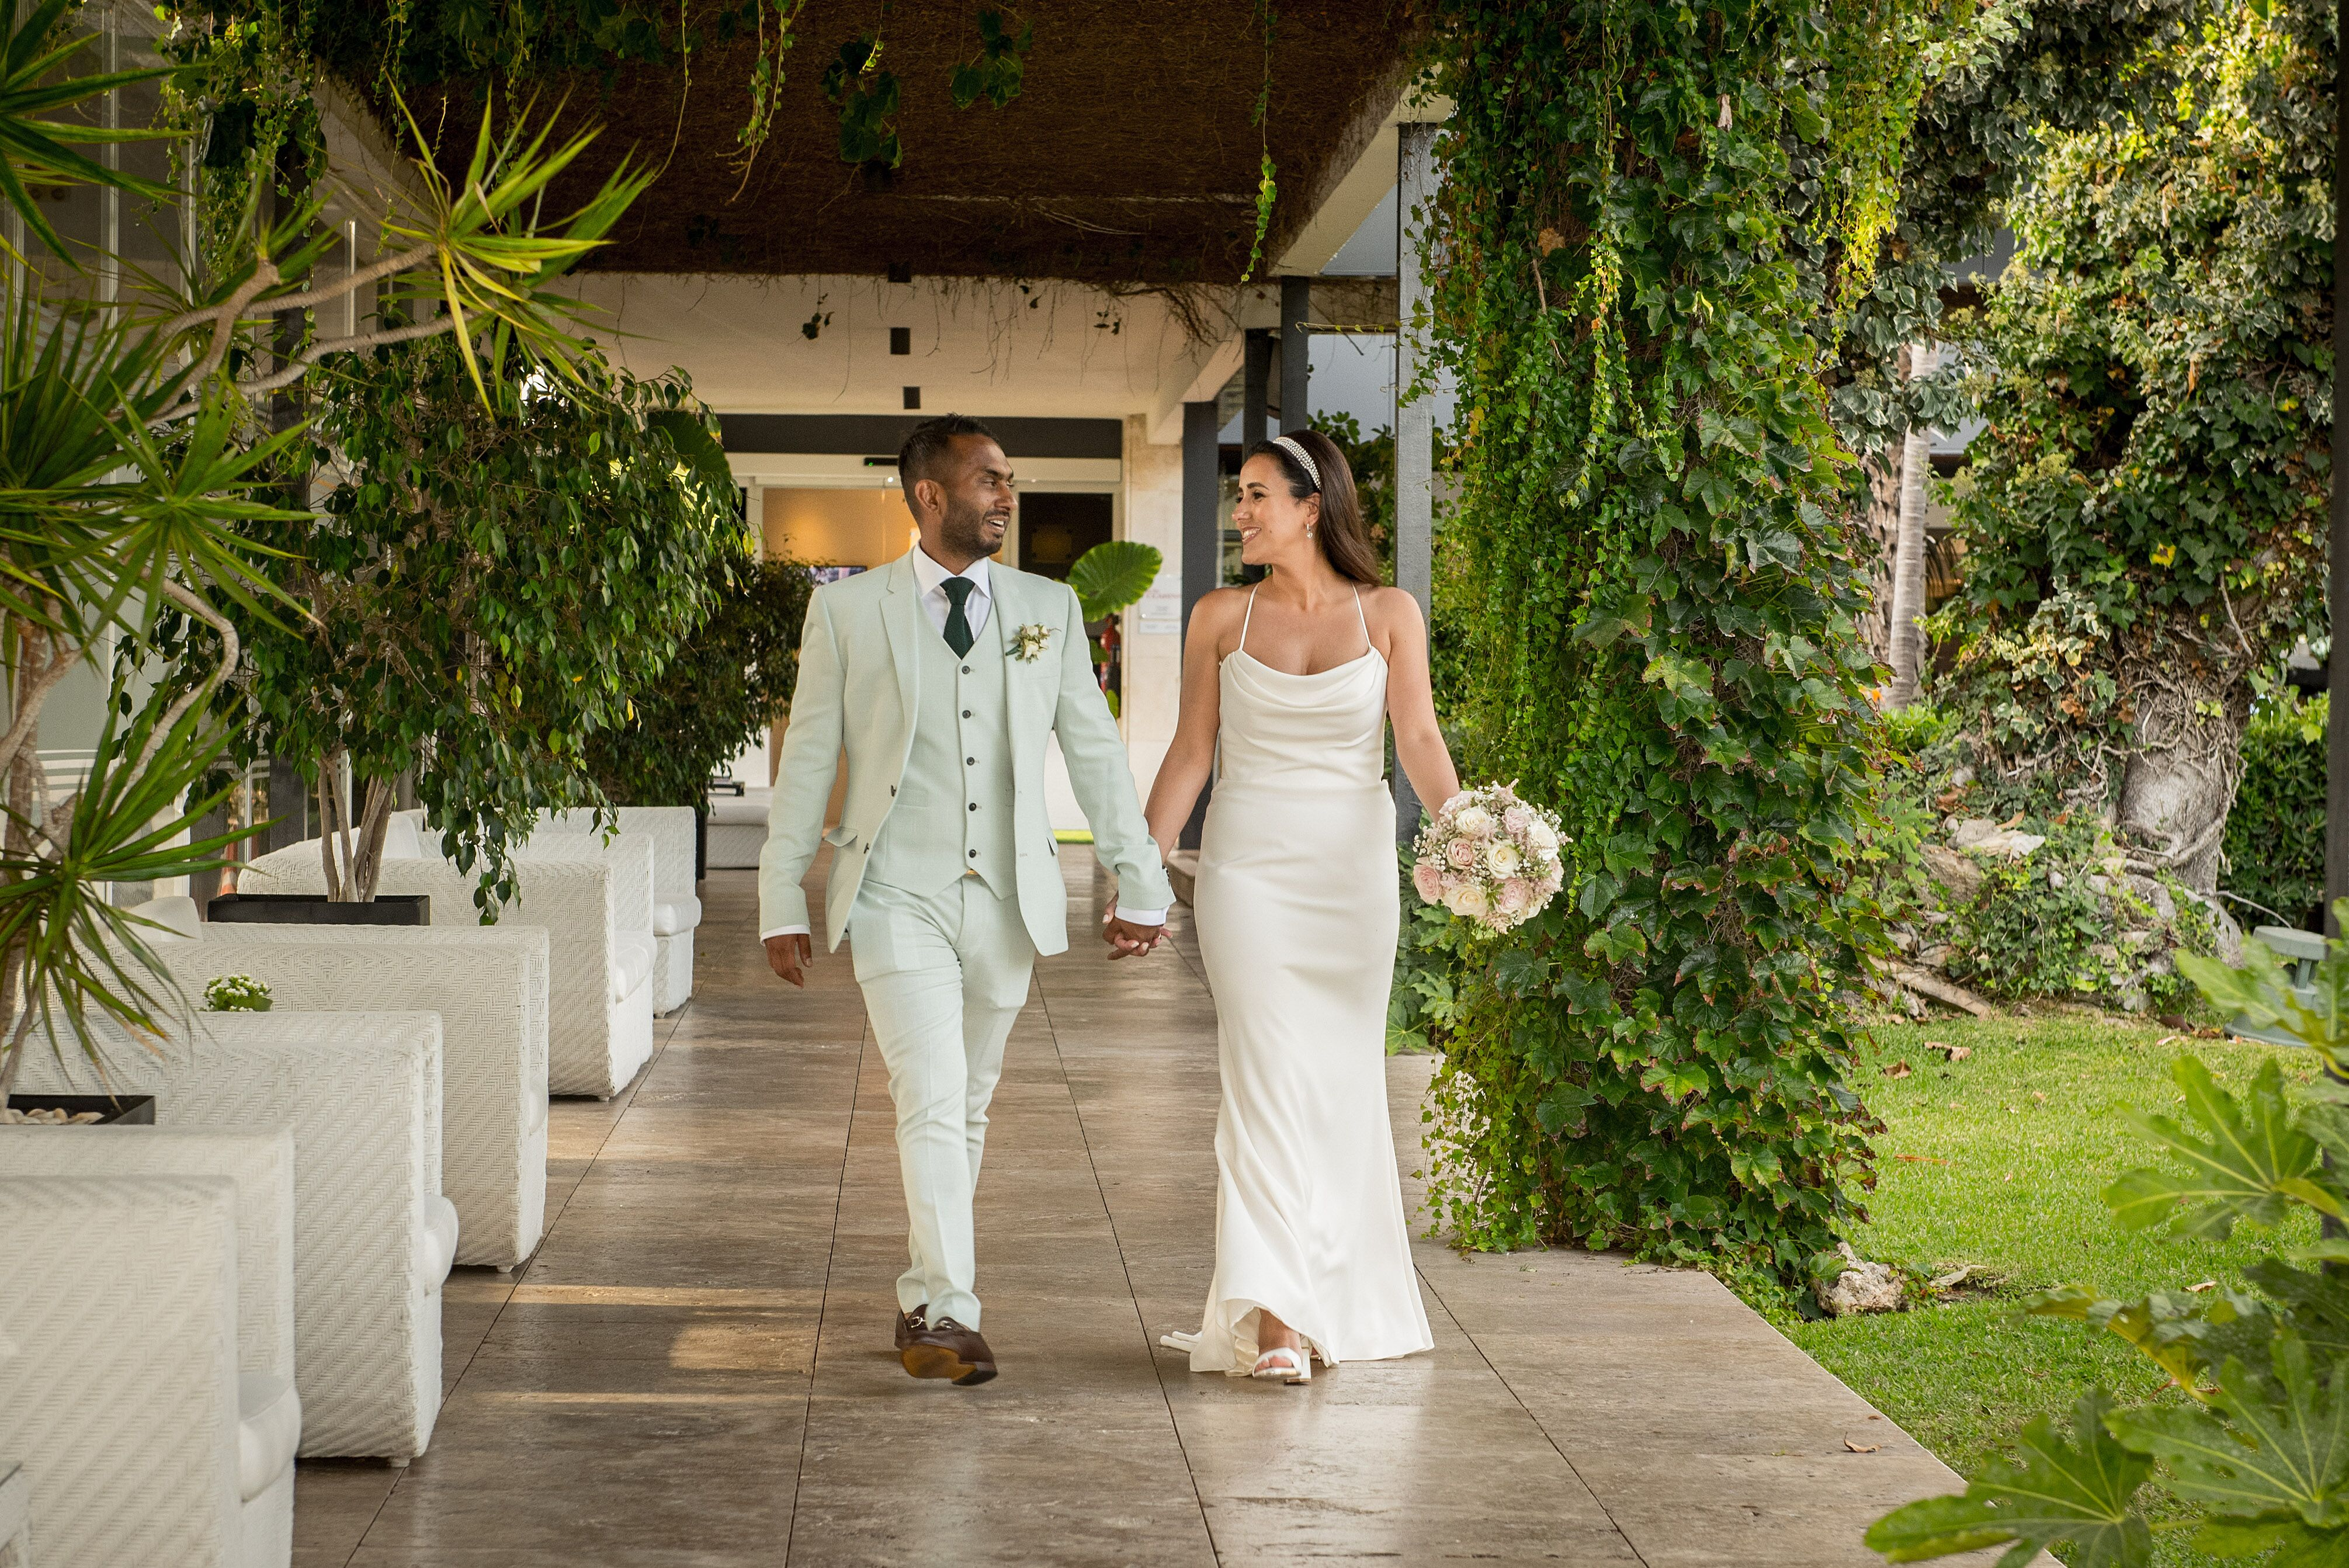 The bride and groom strolling through the hotel grounds